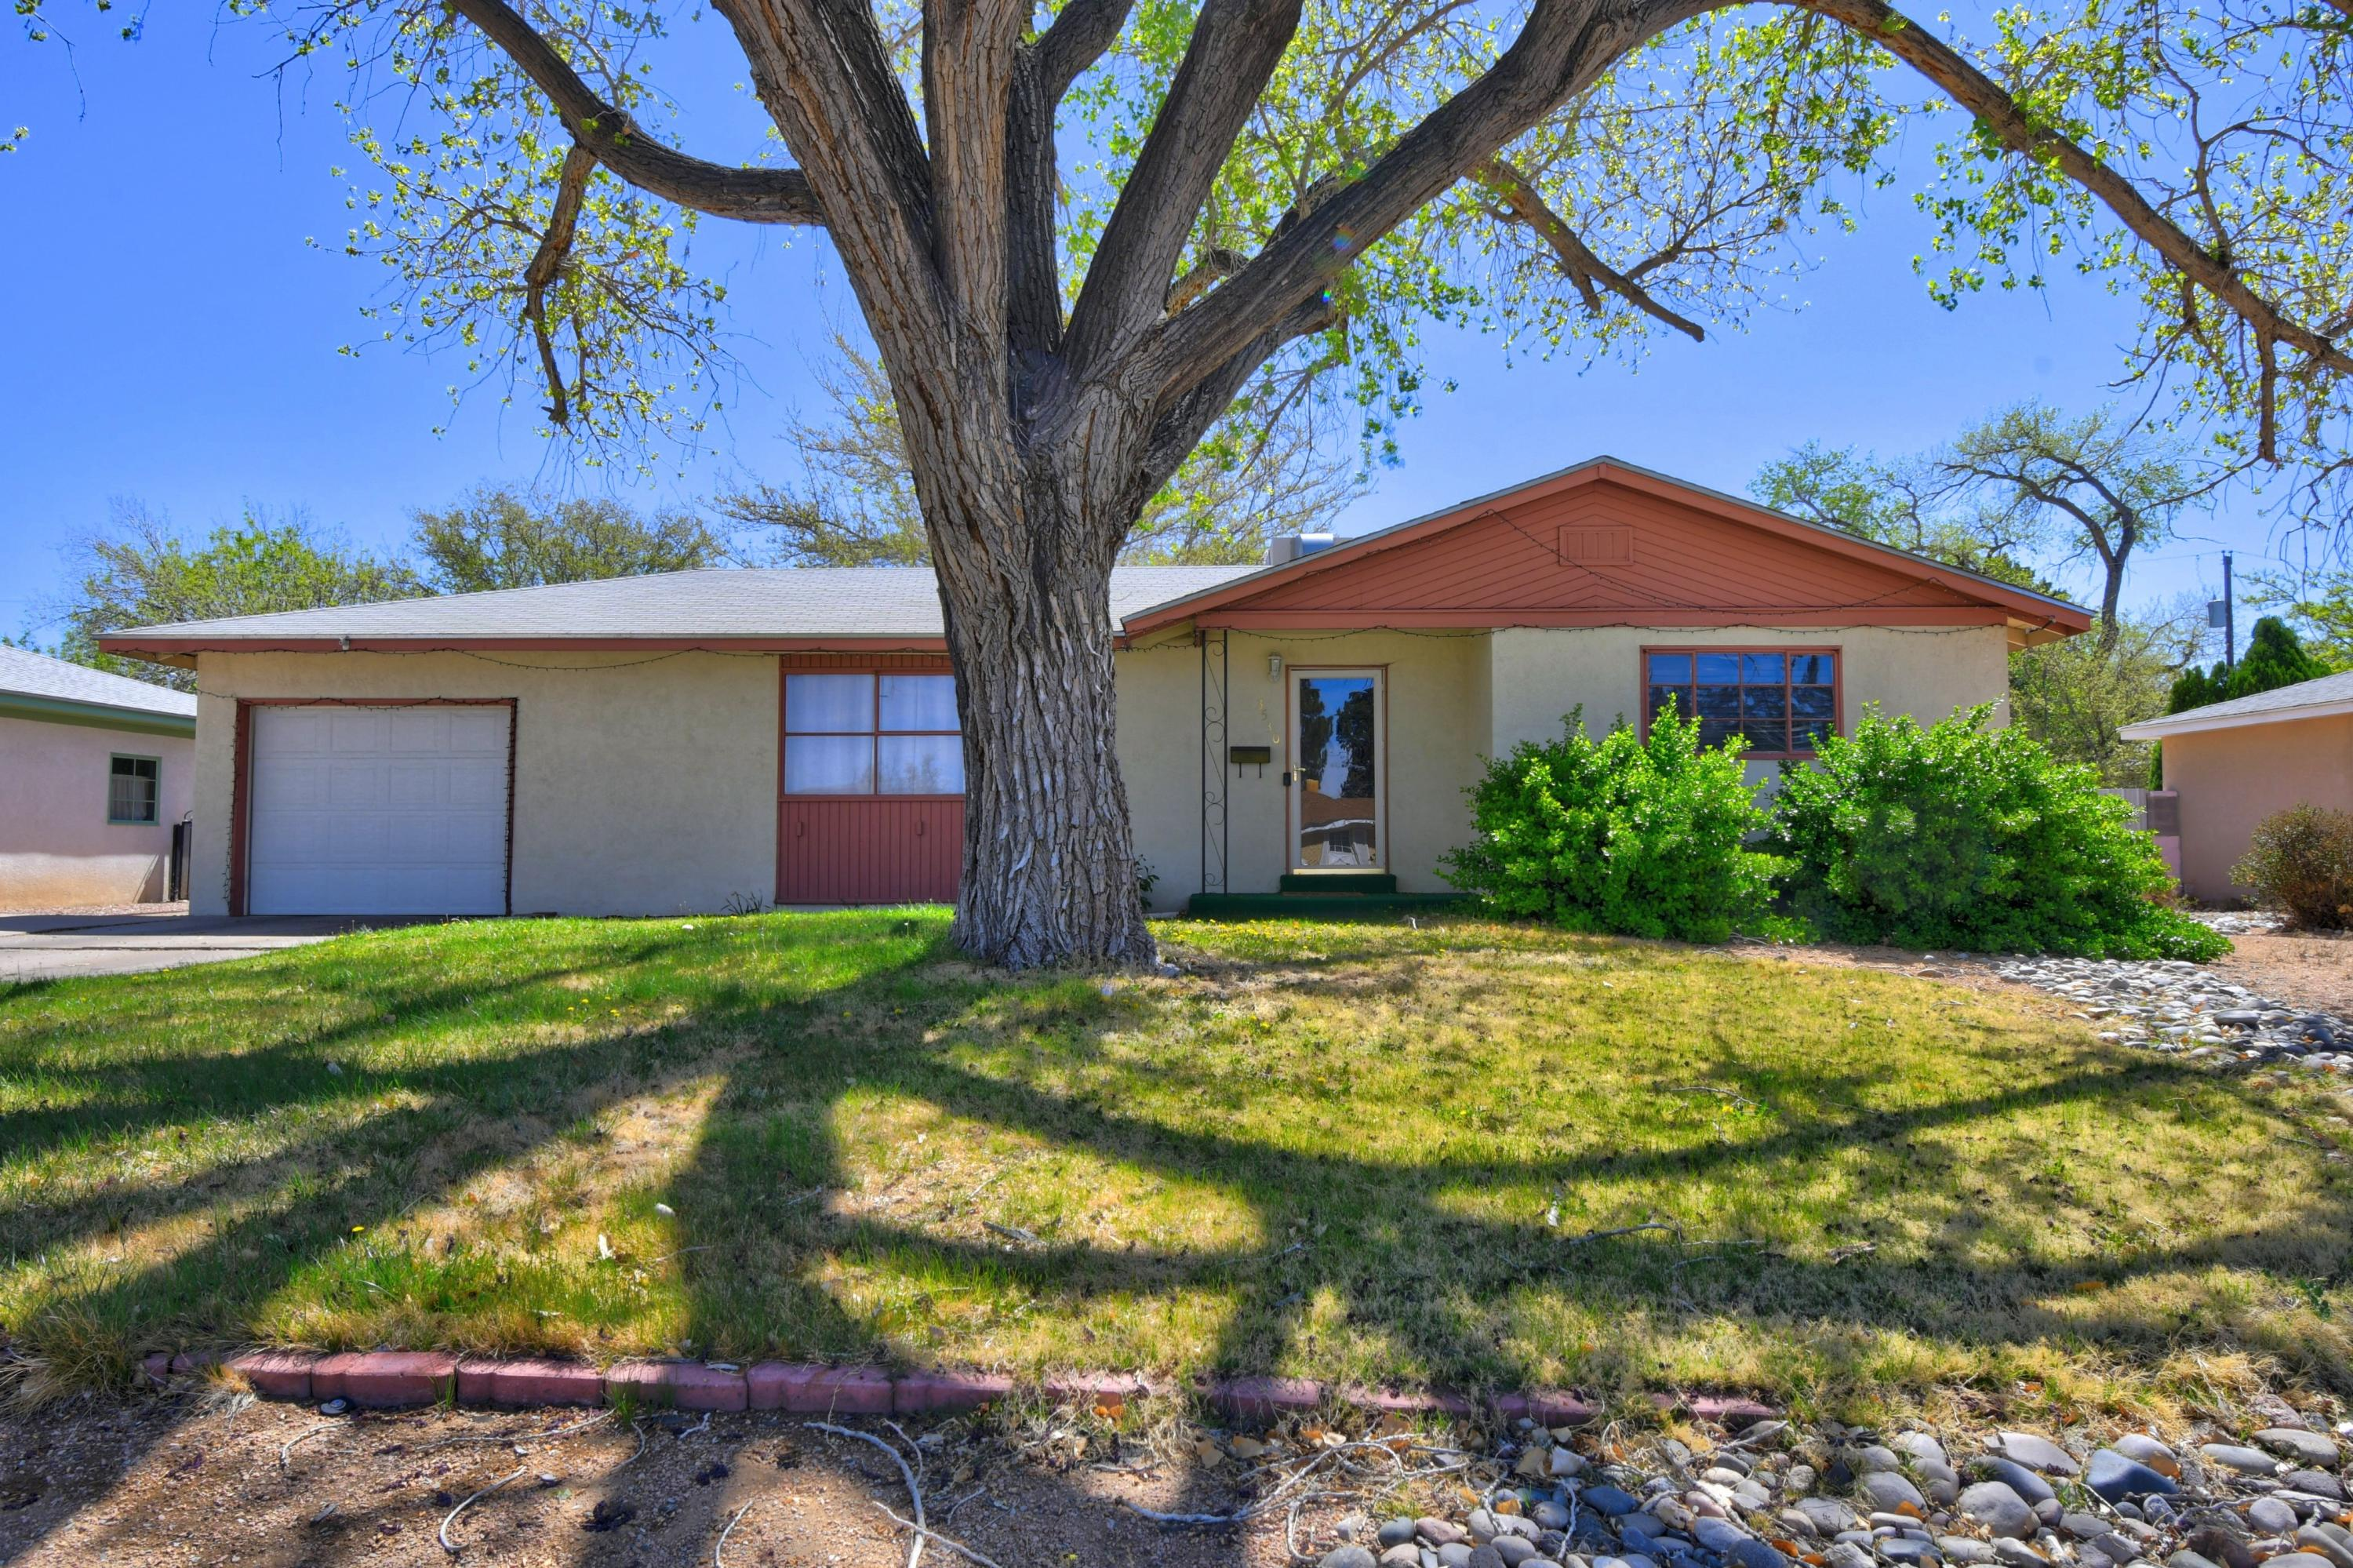 This beautiful cozy home sits on 0.29 Acre lot with big back yard. It is conveniently located near parks, restaurants, shopping, and entertainment. No carpet. Water heater replaced 2020. Evaporative cooler replaced 2020. There is a den area which can be used as another Living Room/Family Room or your home office with backyard view. Granite counter top upgrade in 2019.